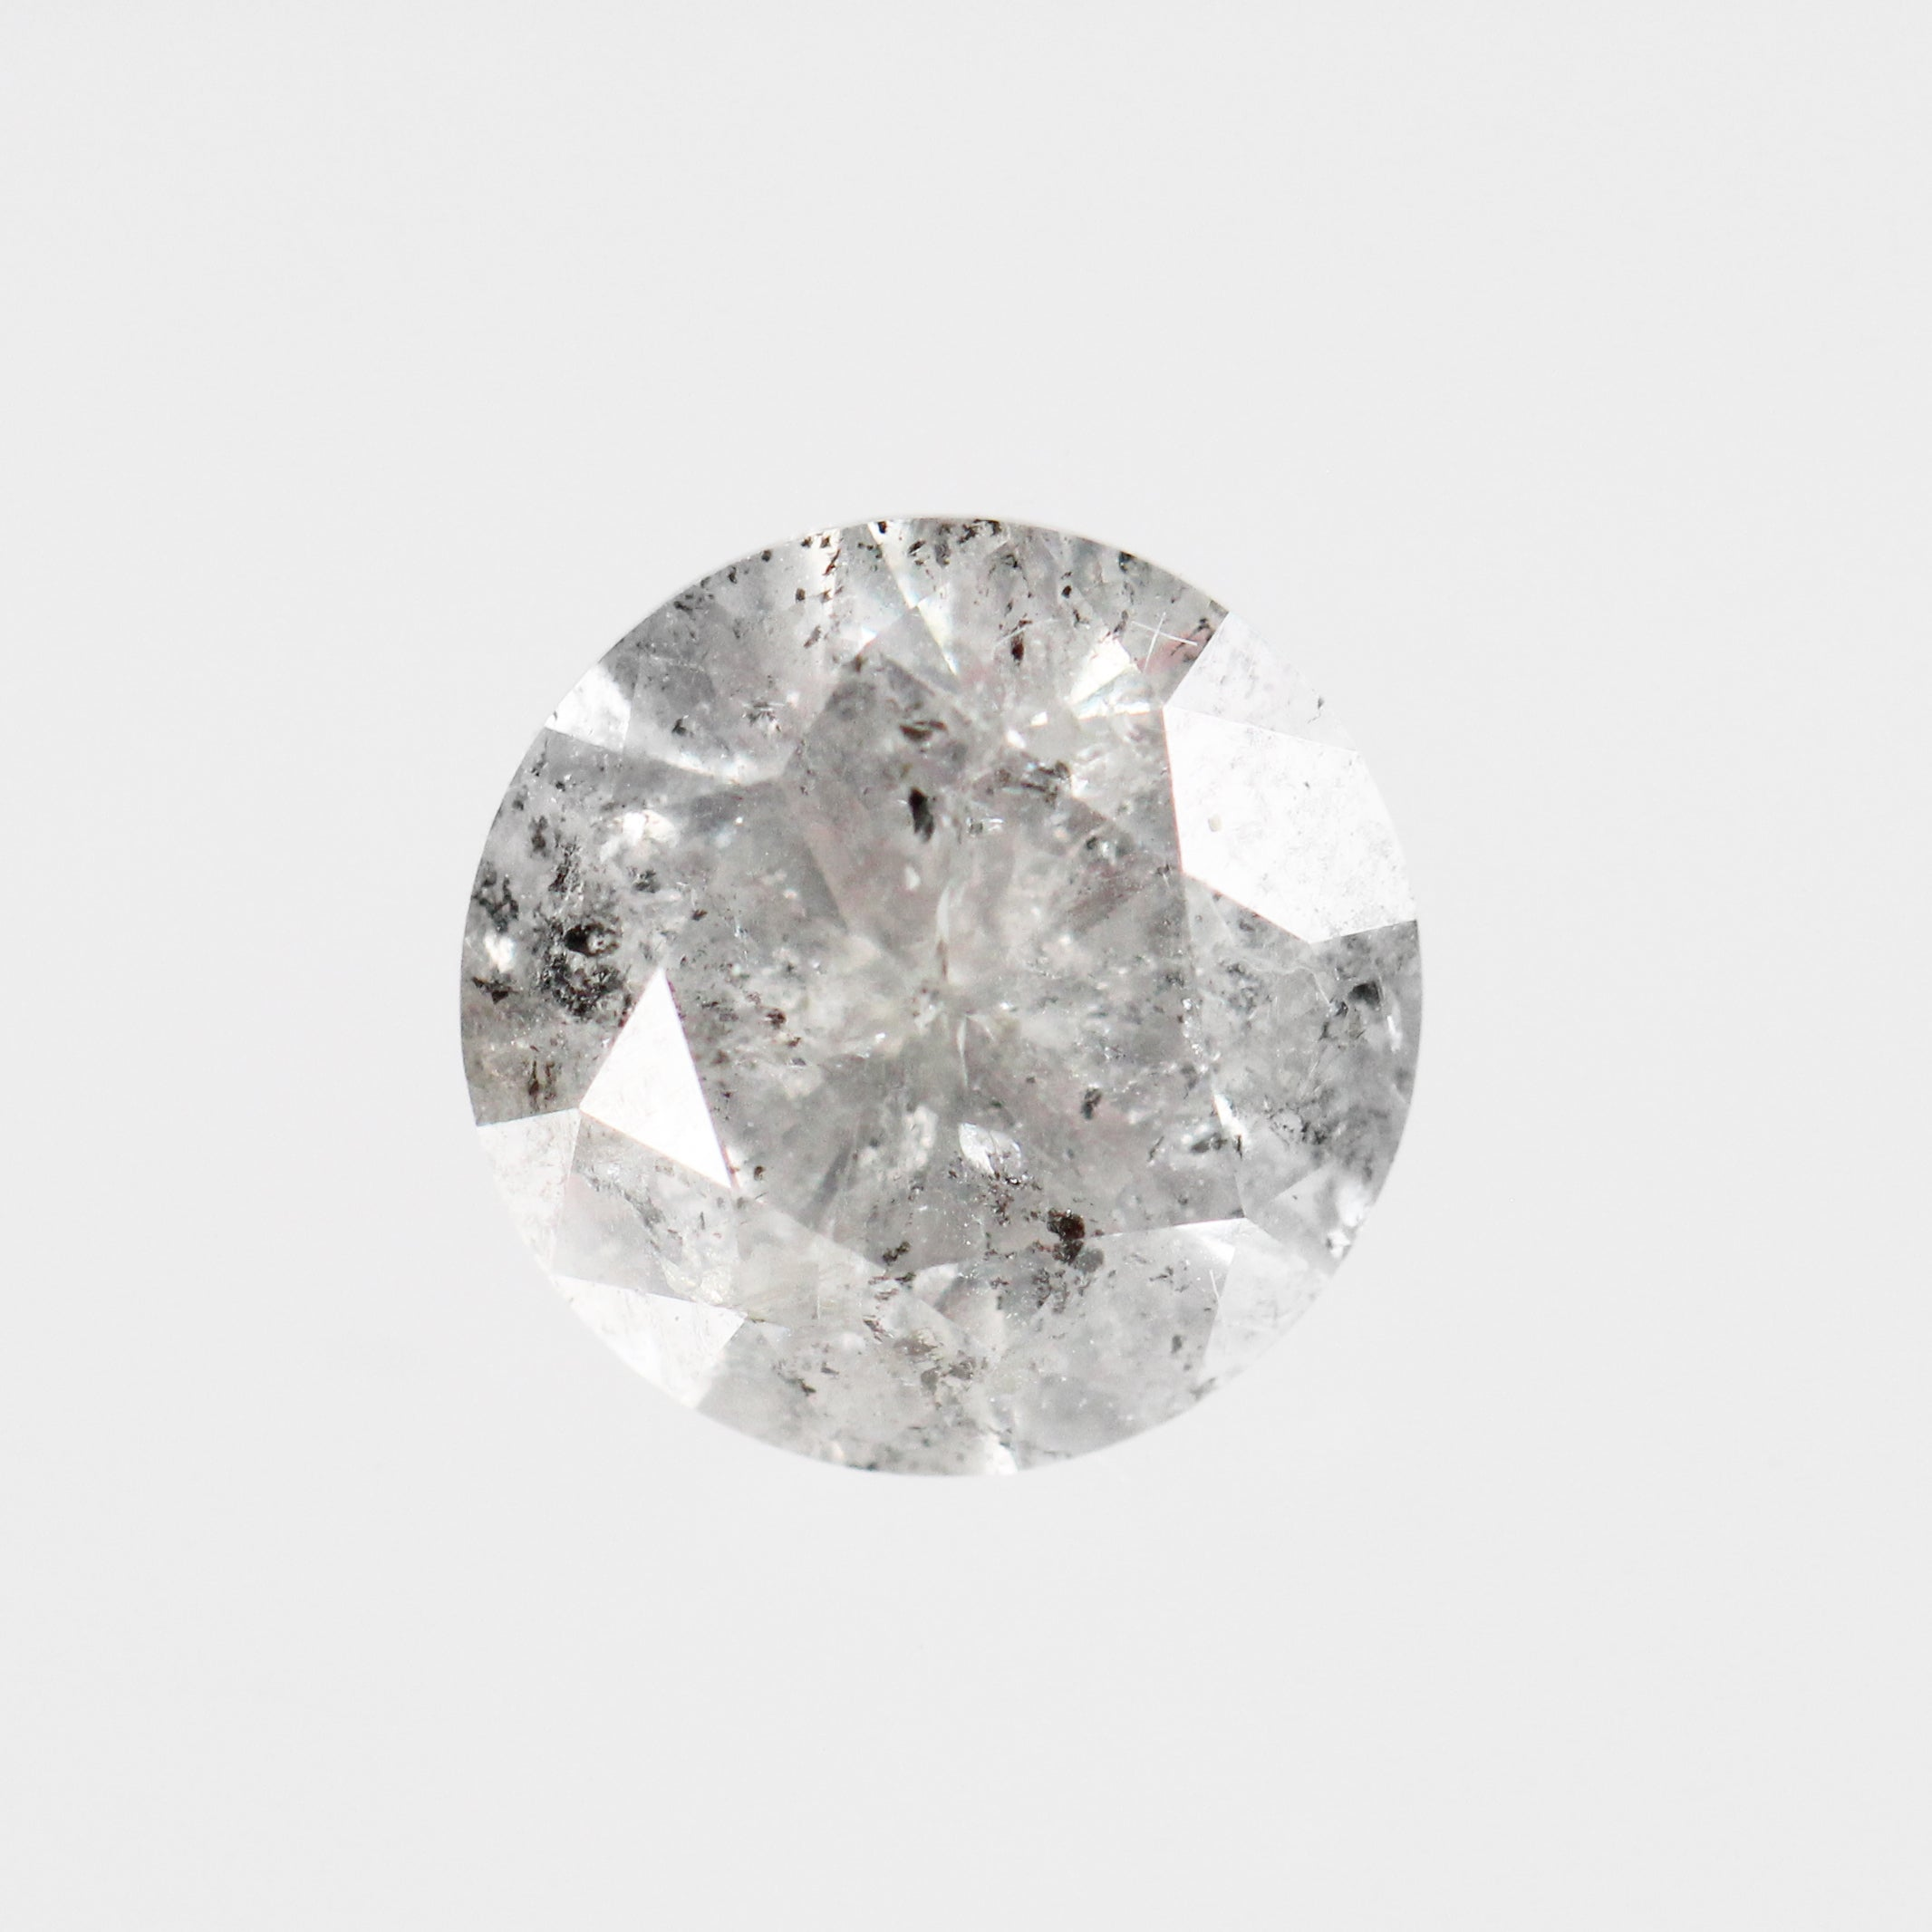 1.51 Carat Round Celestial Diamond for Custom Work - Inventory Code RBWC151 - Celestial Diamonds ® by Midwinter Co.